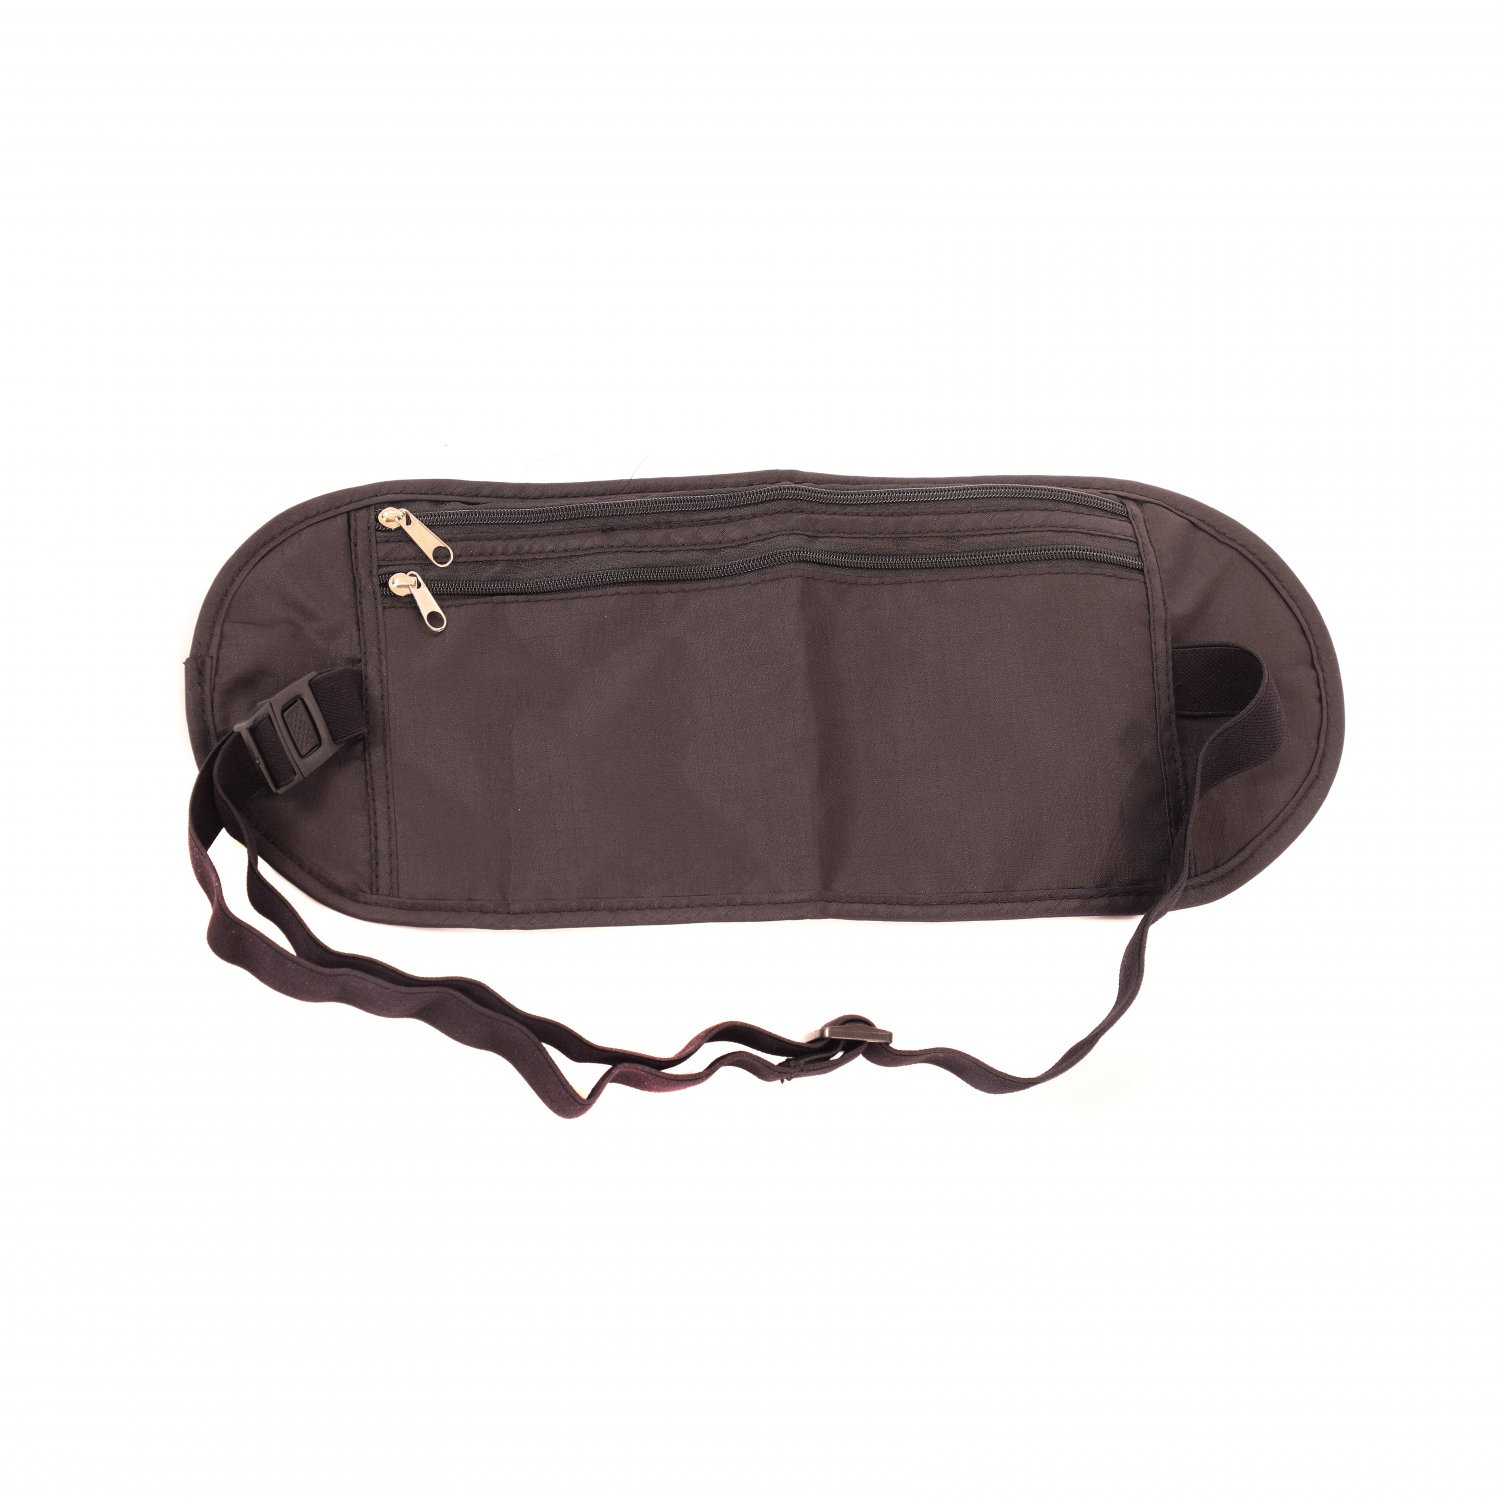 Travel Money Belt Bag Safe Secure Waist Pouch RFID Blocking